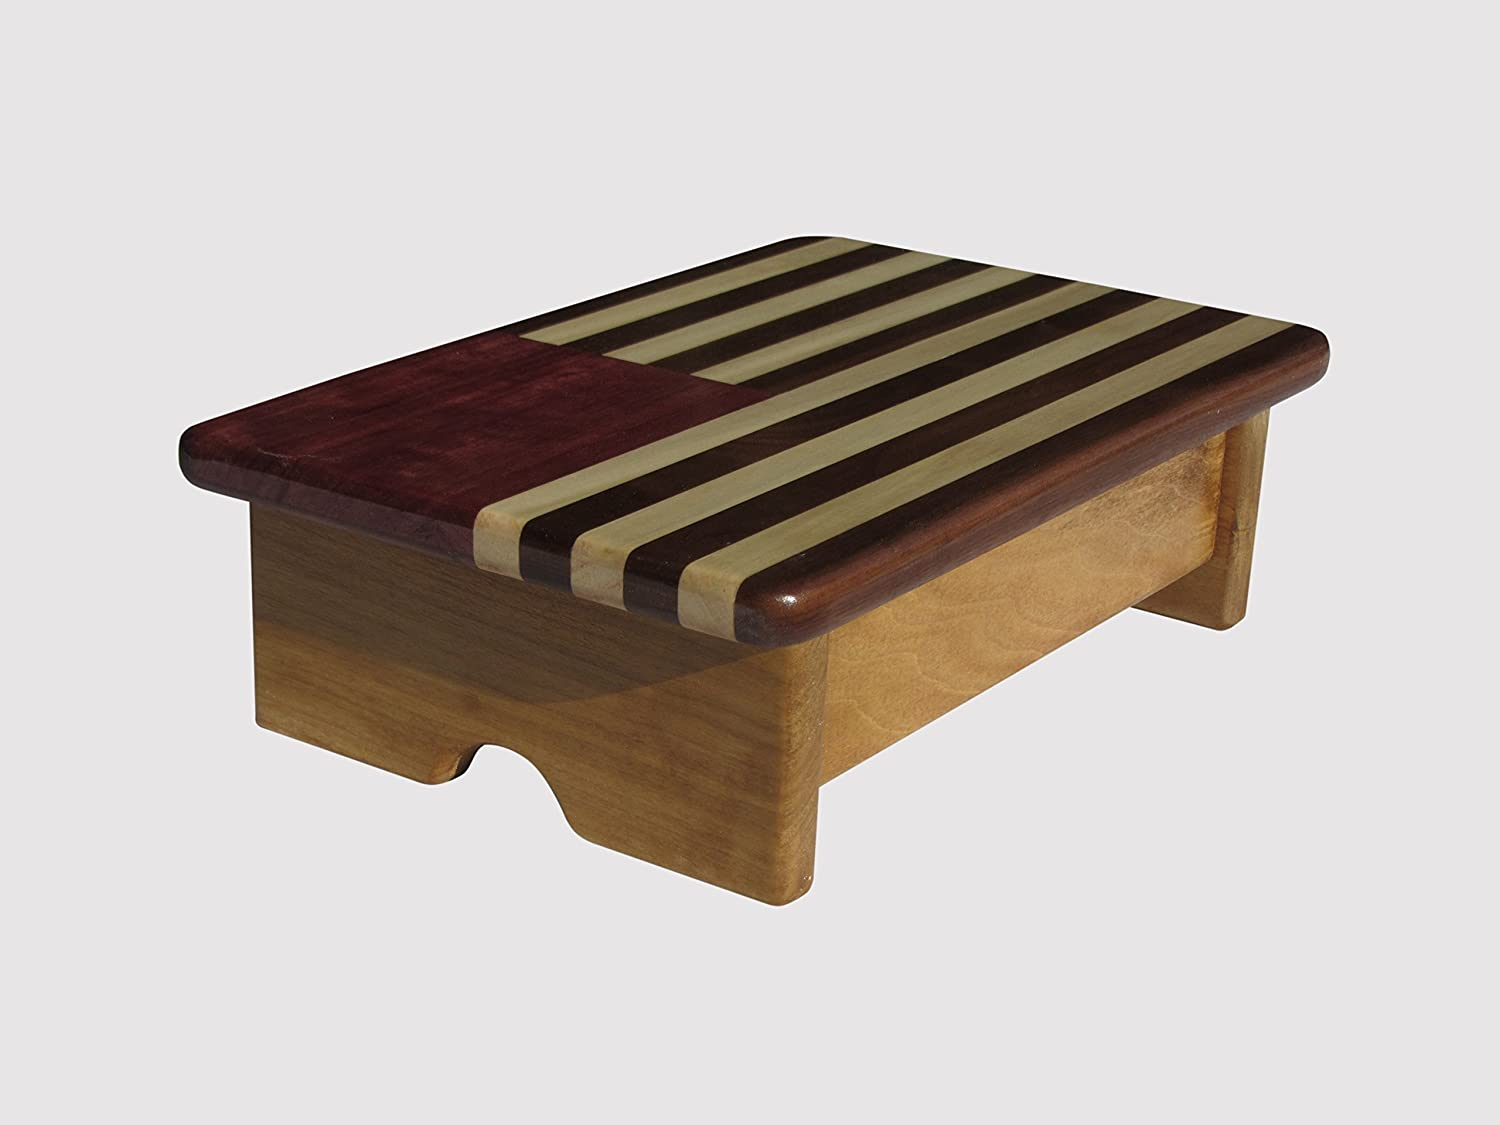 Foot Stool Poplar Wood American Flag Design (Made in The USA) (Maple Stain - 4  Tall)